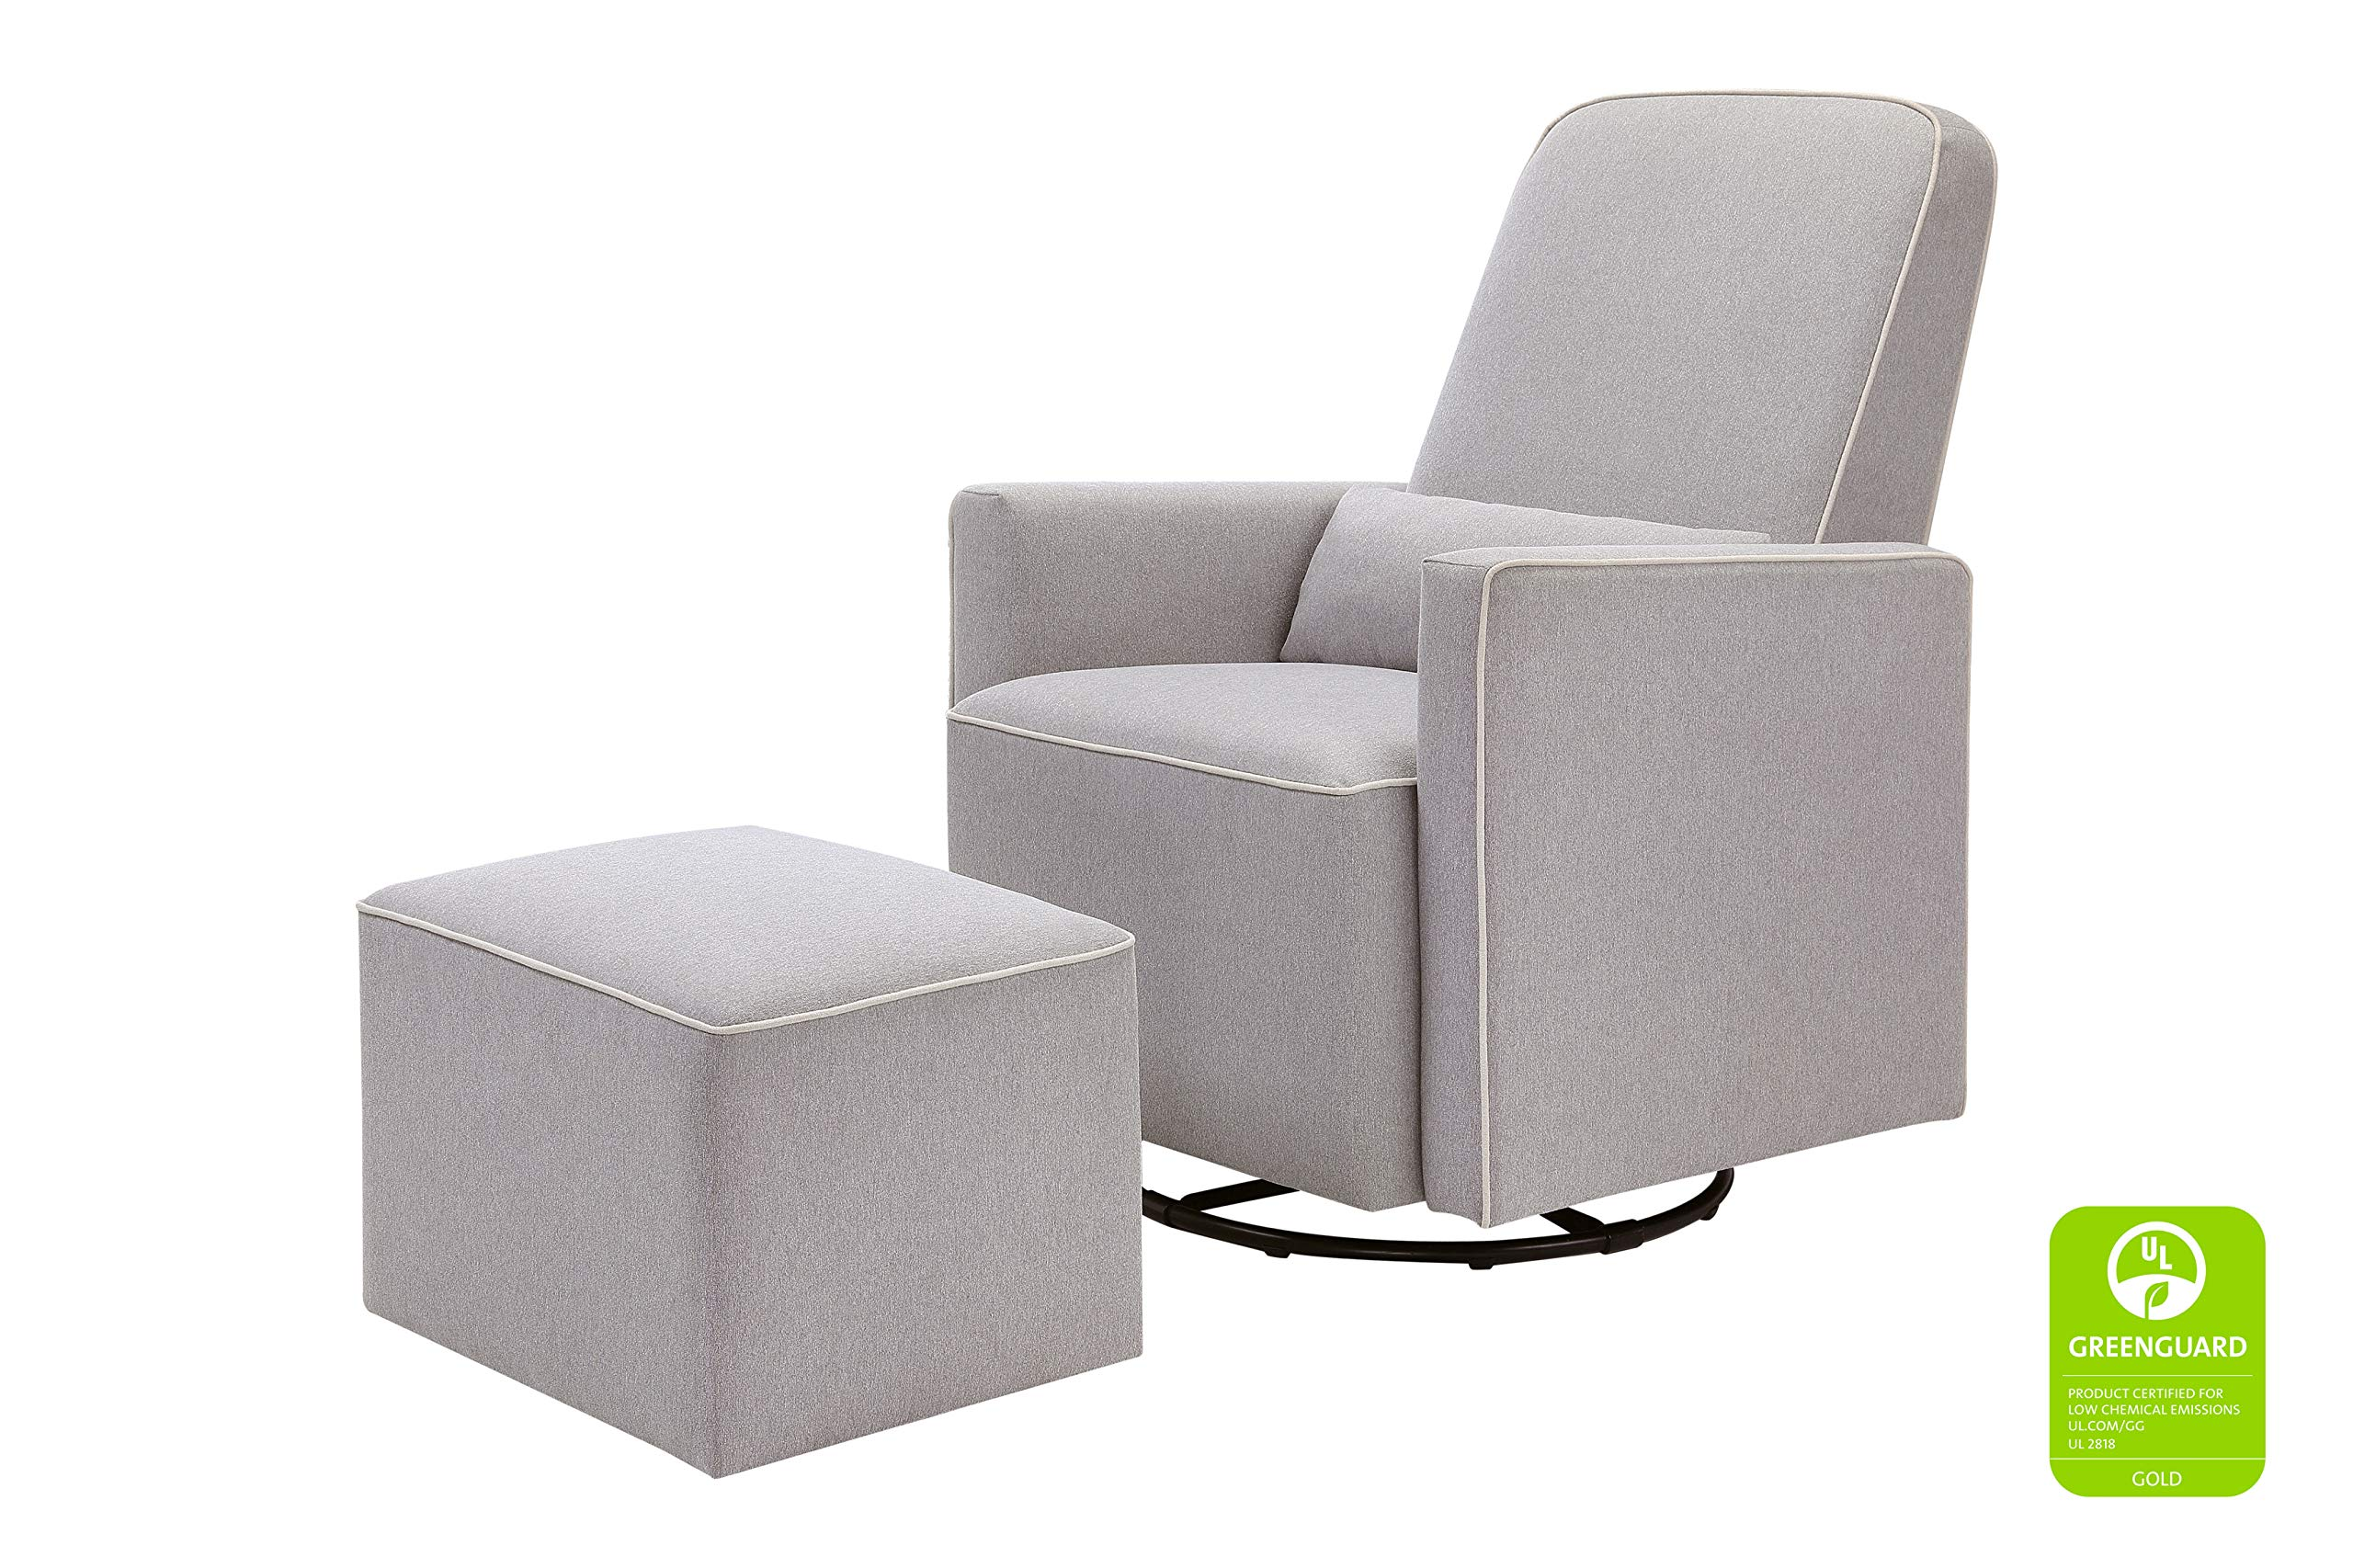 DaVinci Olive Upholstered Swivel Glider with Bonus Ottoman, Grey with Cream Piping by DaVinci